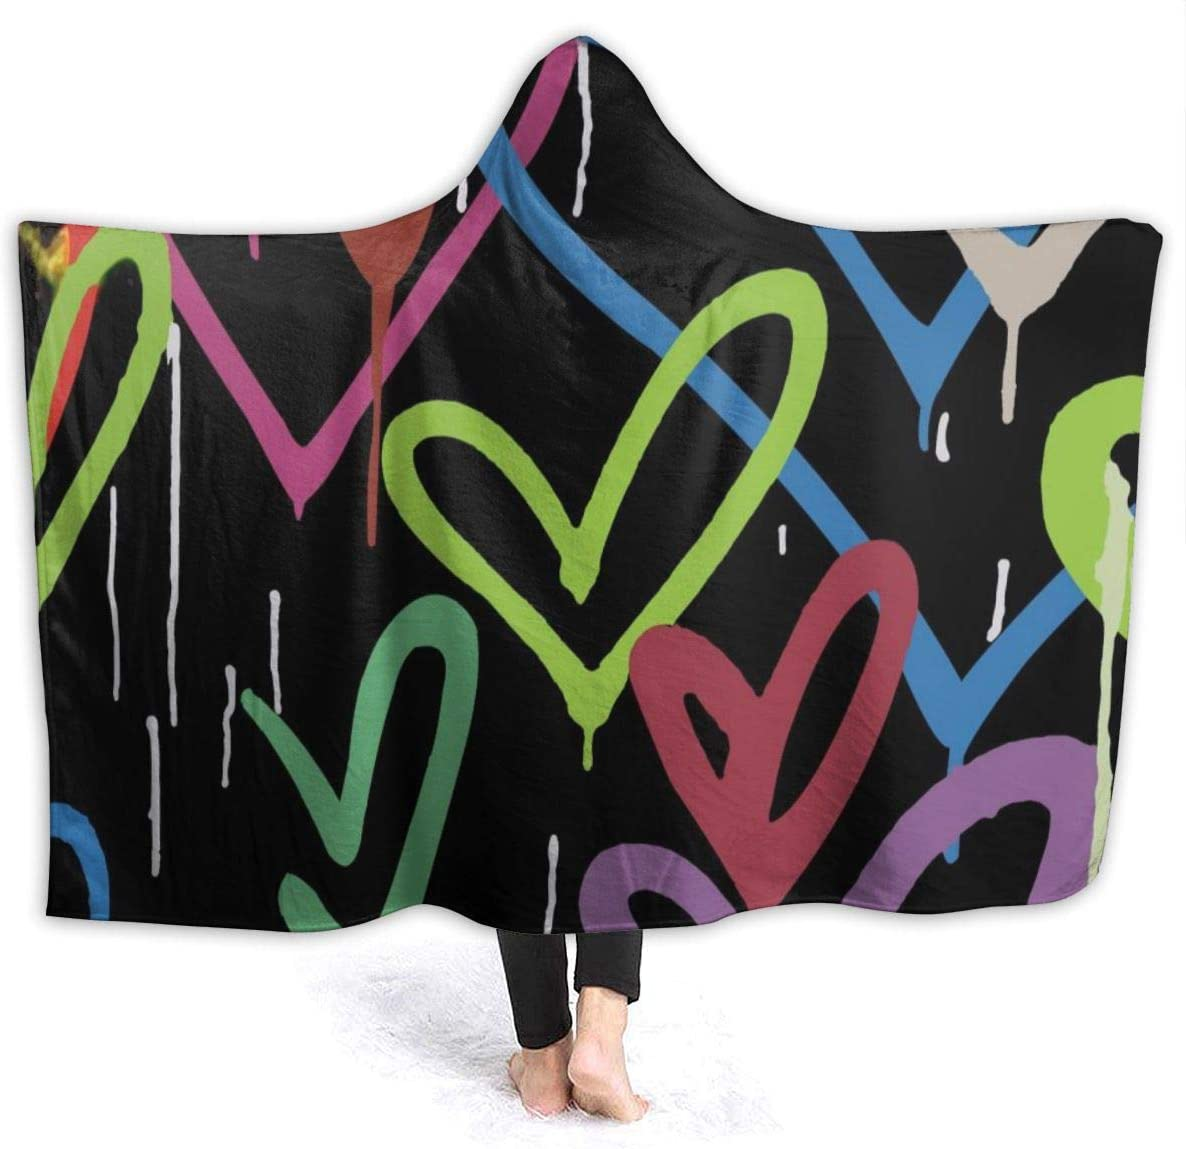 AUISS Warm Hoodie Blanket Hearts Collection Hooded Throw Wrap Cape Cloak Robe Teenager Thermal School Travel Shawl Flannel with Sleeves